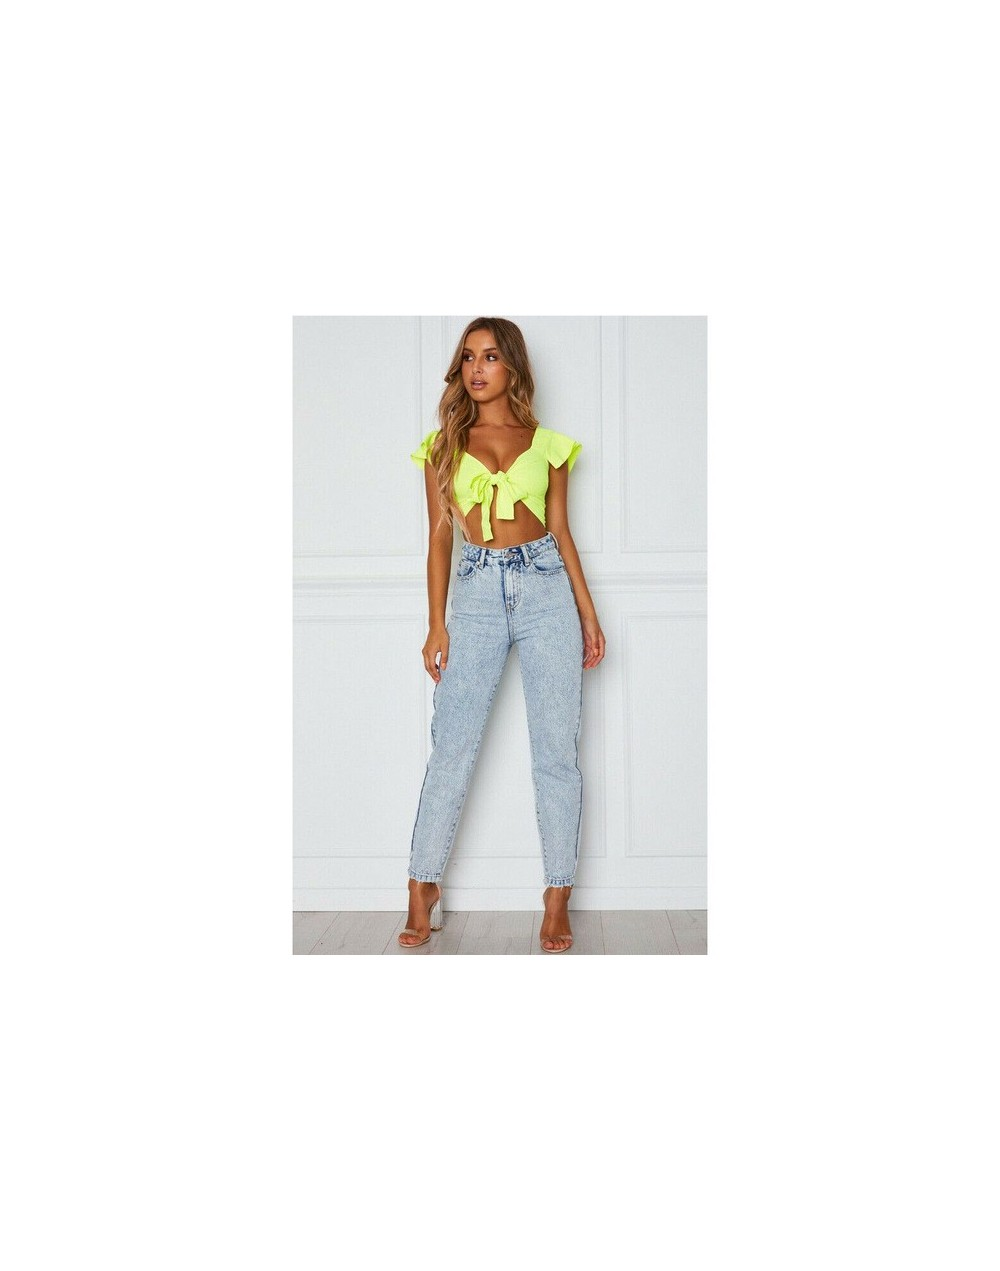 Fashion Women Short Sleeve Soft Crop Top Front Knot Tie Ladies Casual Ruffle Solid Color Summer V-Neck Shirt Clothes - Style...